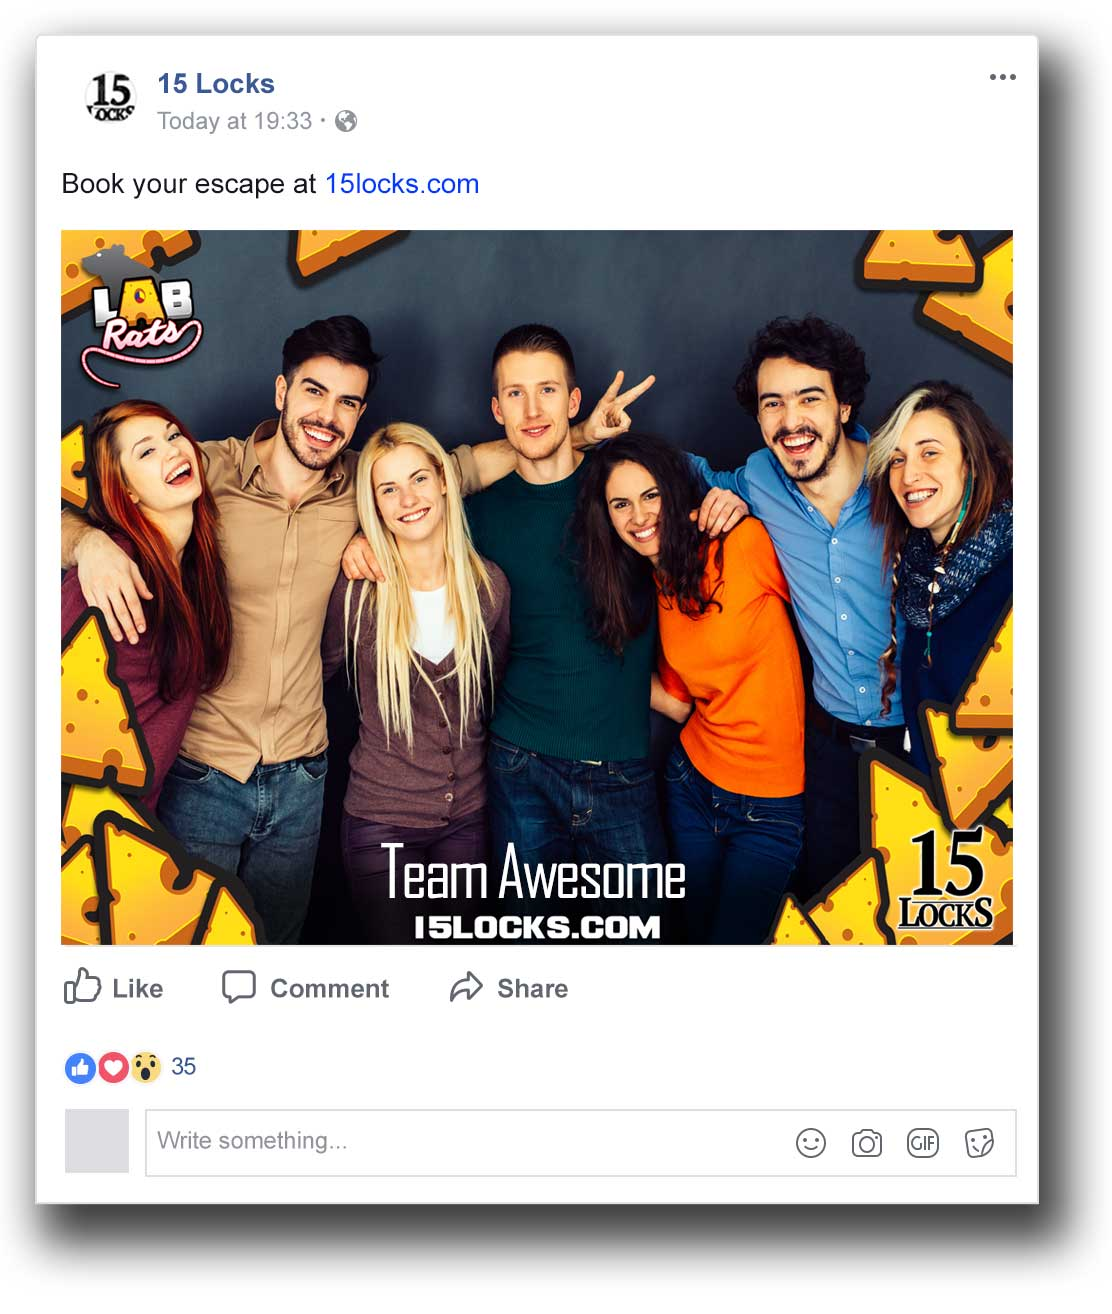 Buzzshot Escape Room Software uploads automatically to Facebook